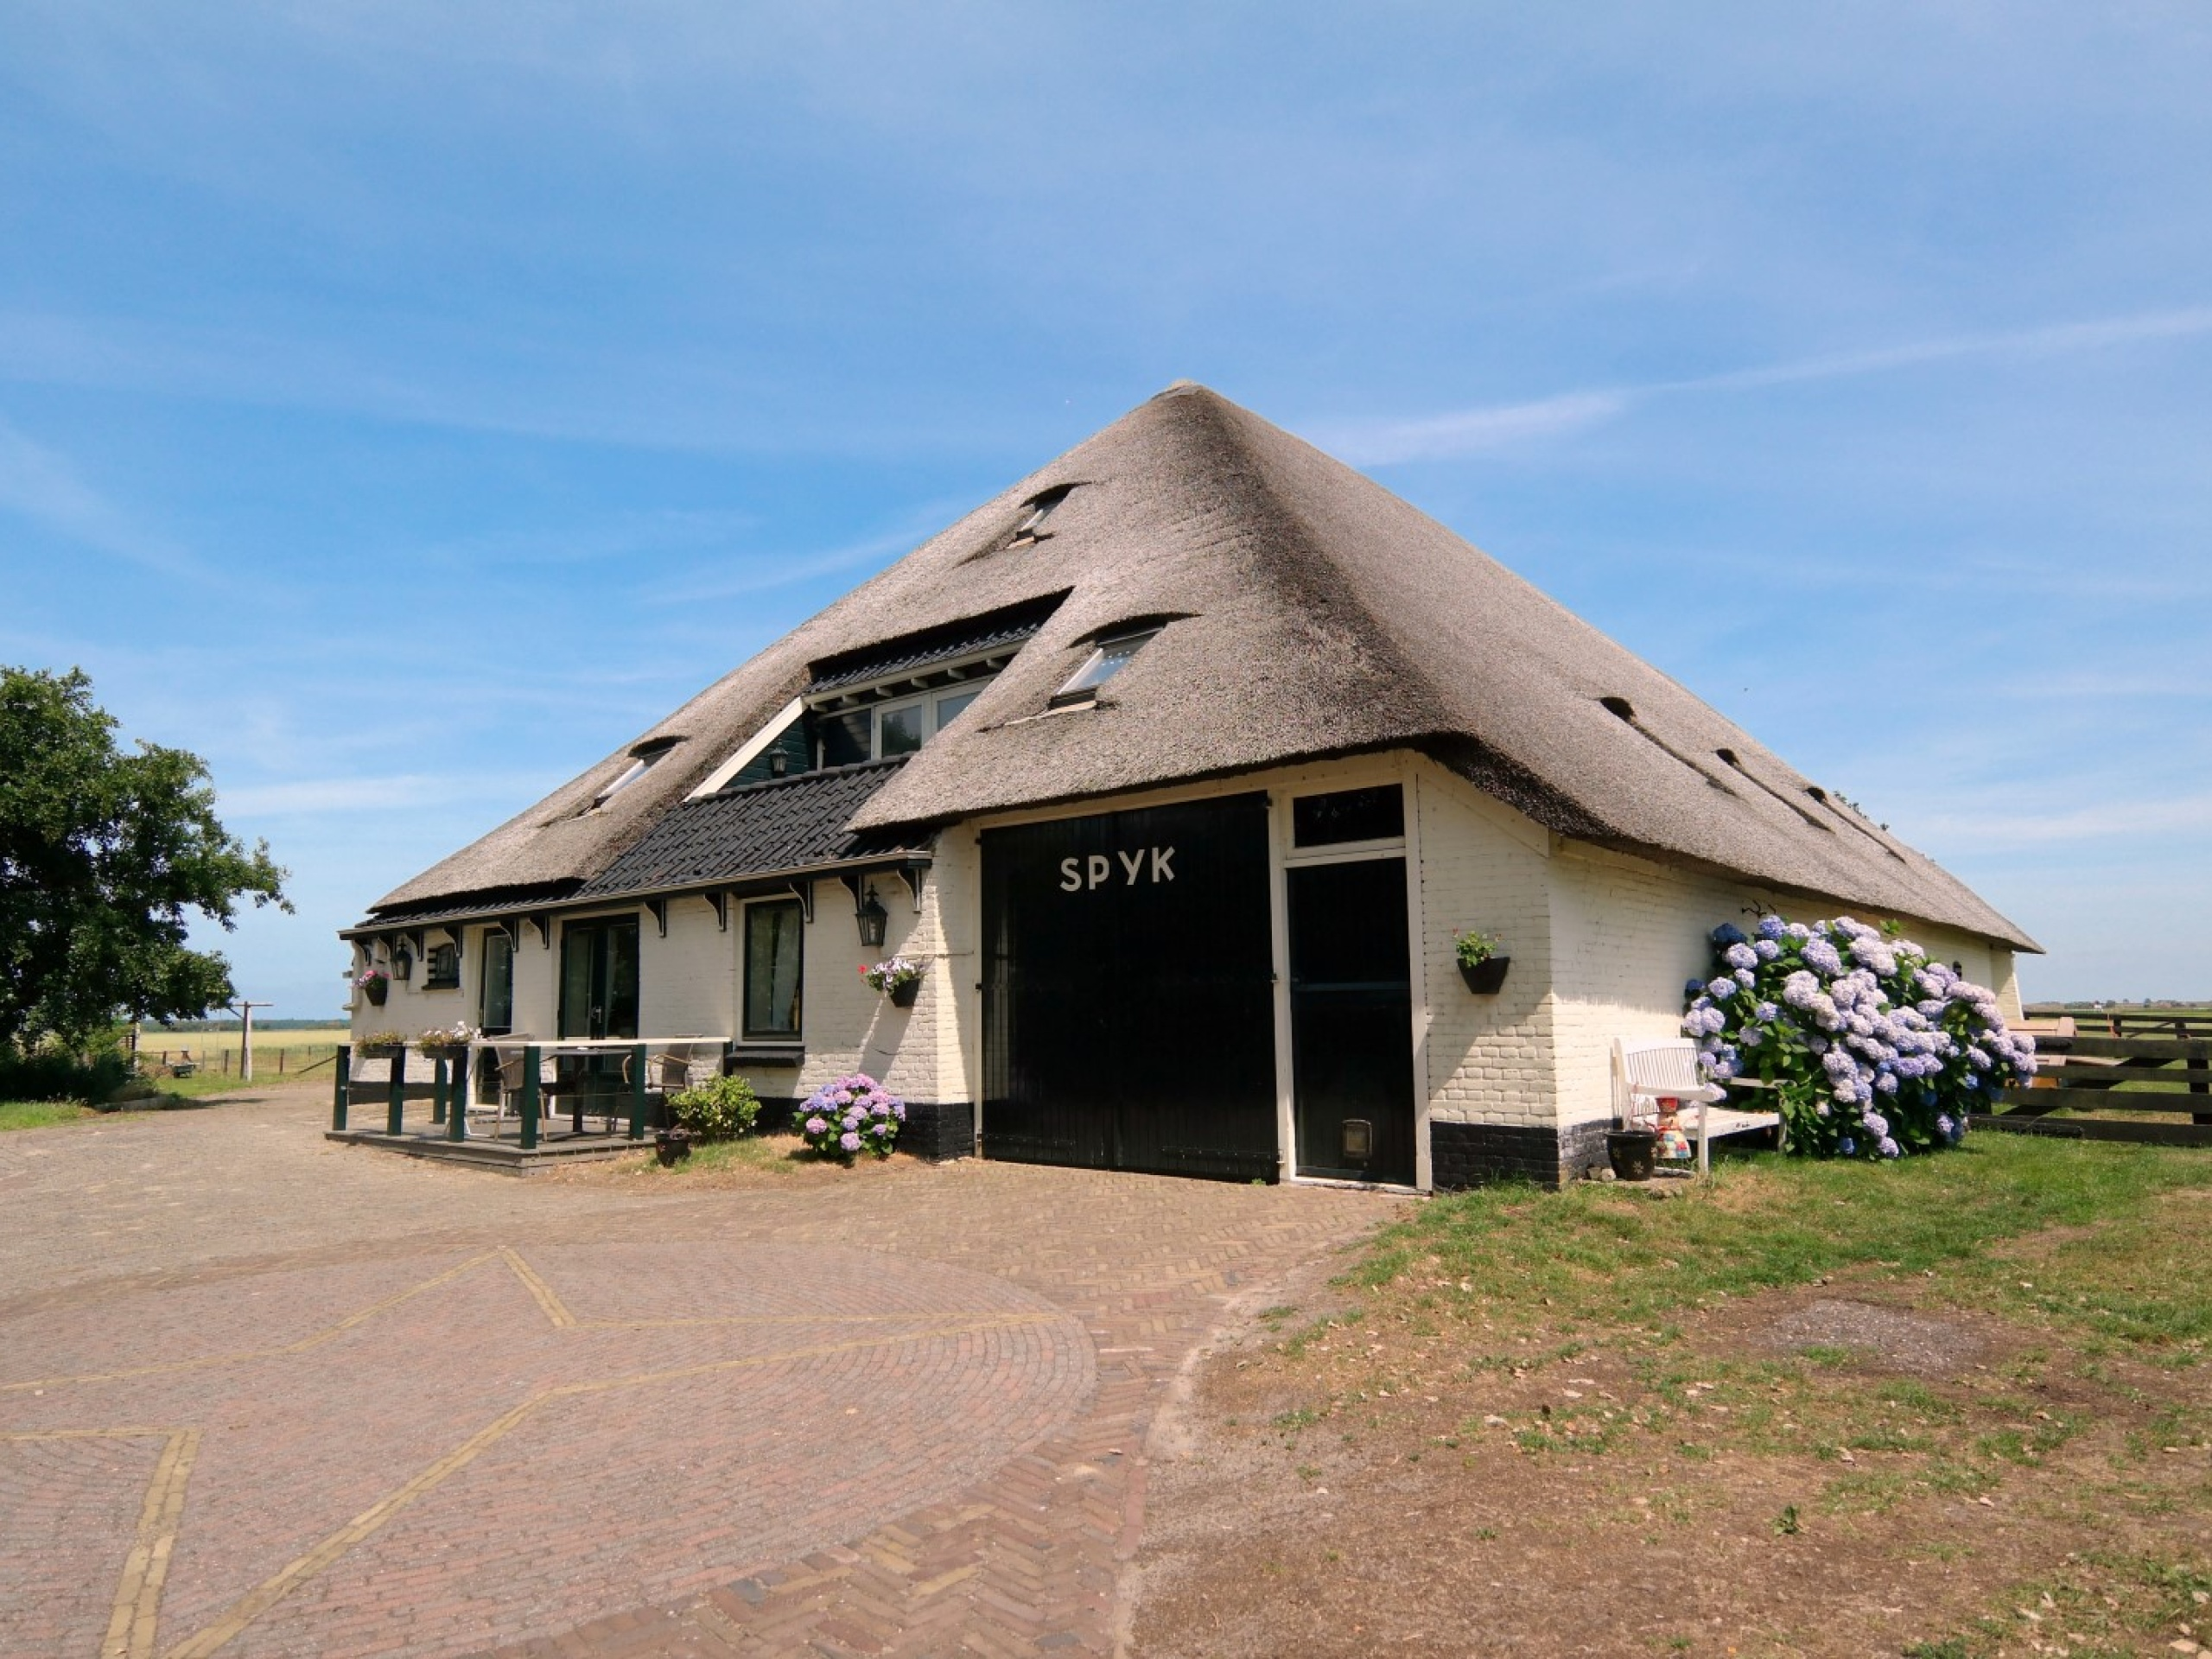 Charming apartment in a quiet and rural location in an authentic farmhouse near Den Hoorn